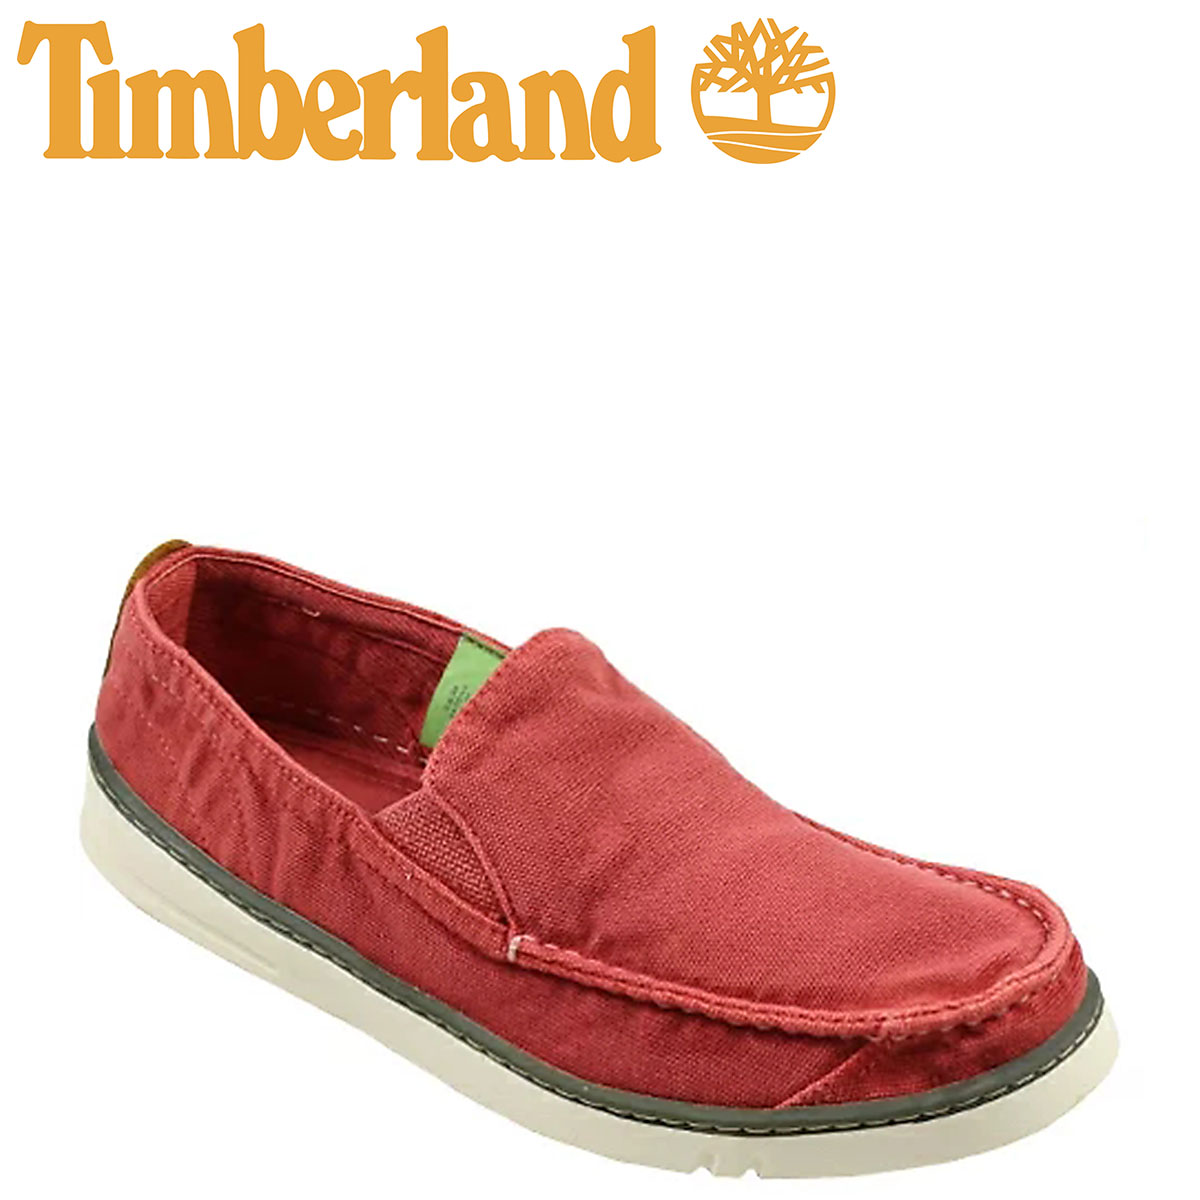 Timberland Timberland Earthkeepers hooksett crafted slip-on shoes EK HOOKSET HANDCRAFTED SLIP-ON canvas men's 5610R washed red [3 / 24 new in stock] [regular] ★ ★